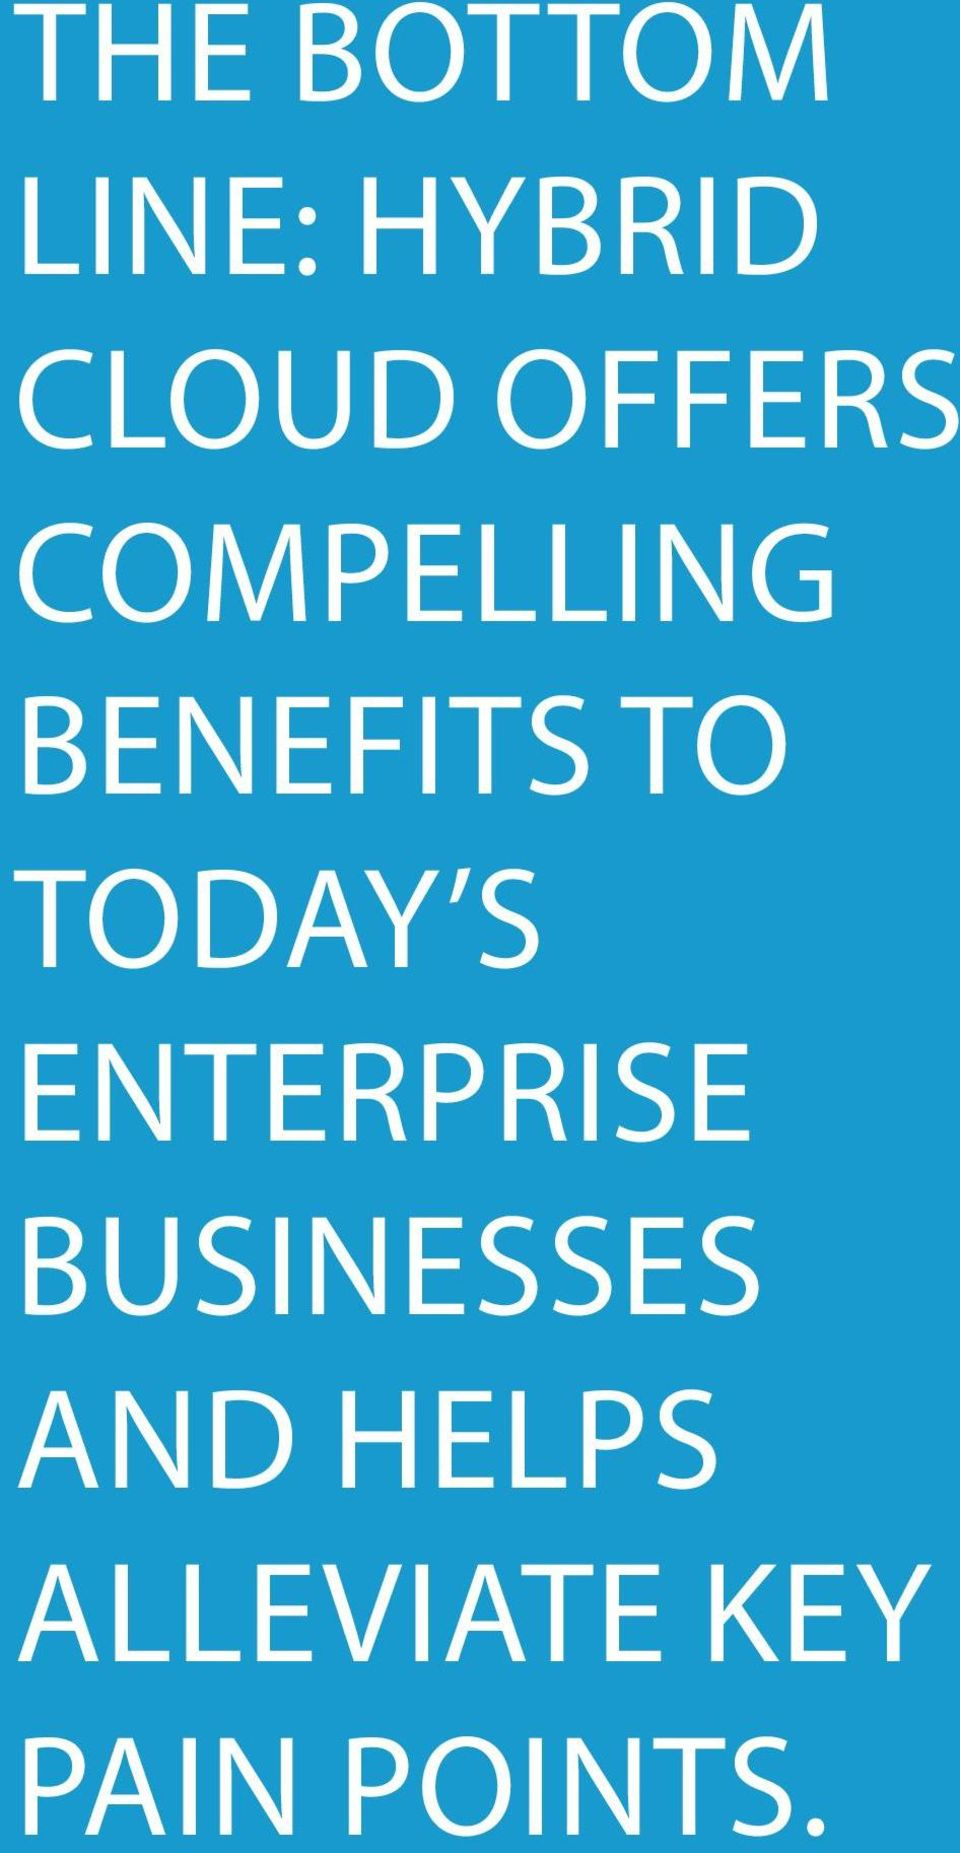 TODAY S ENTERPRISE BUSINESSES